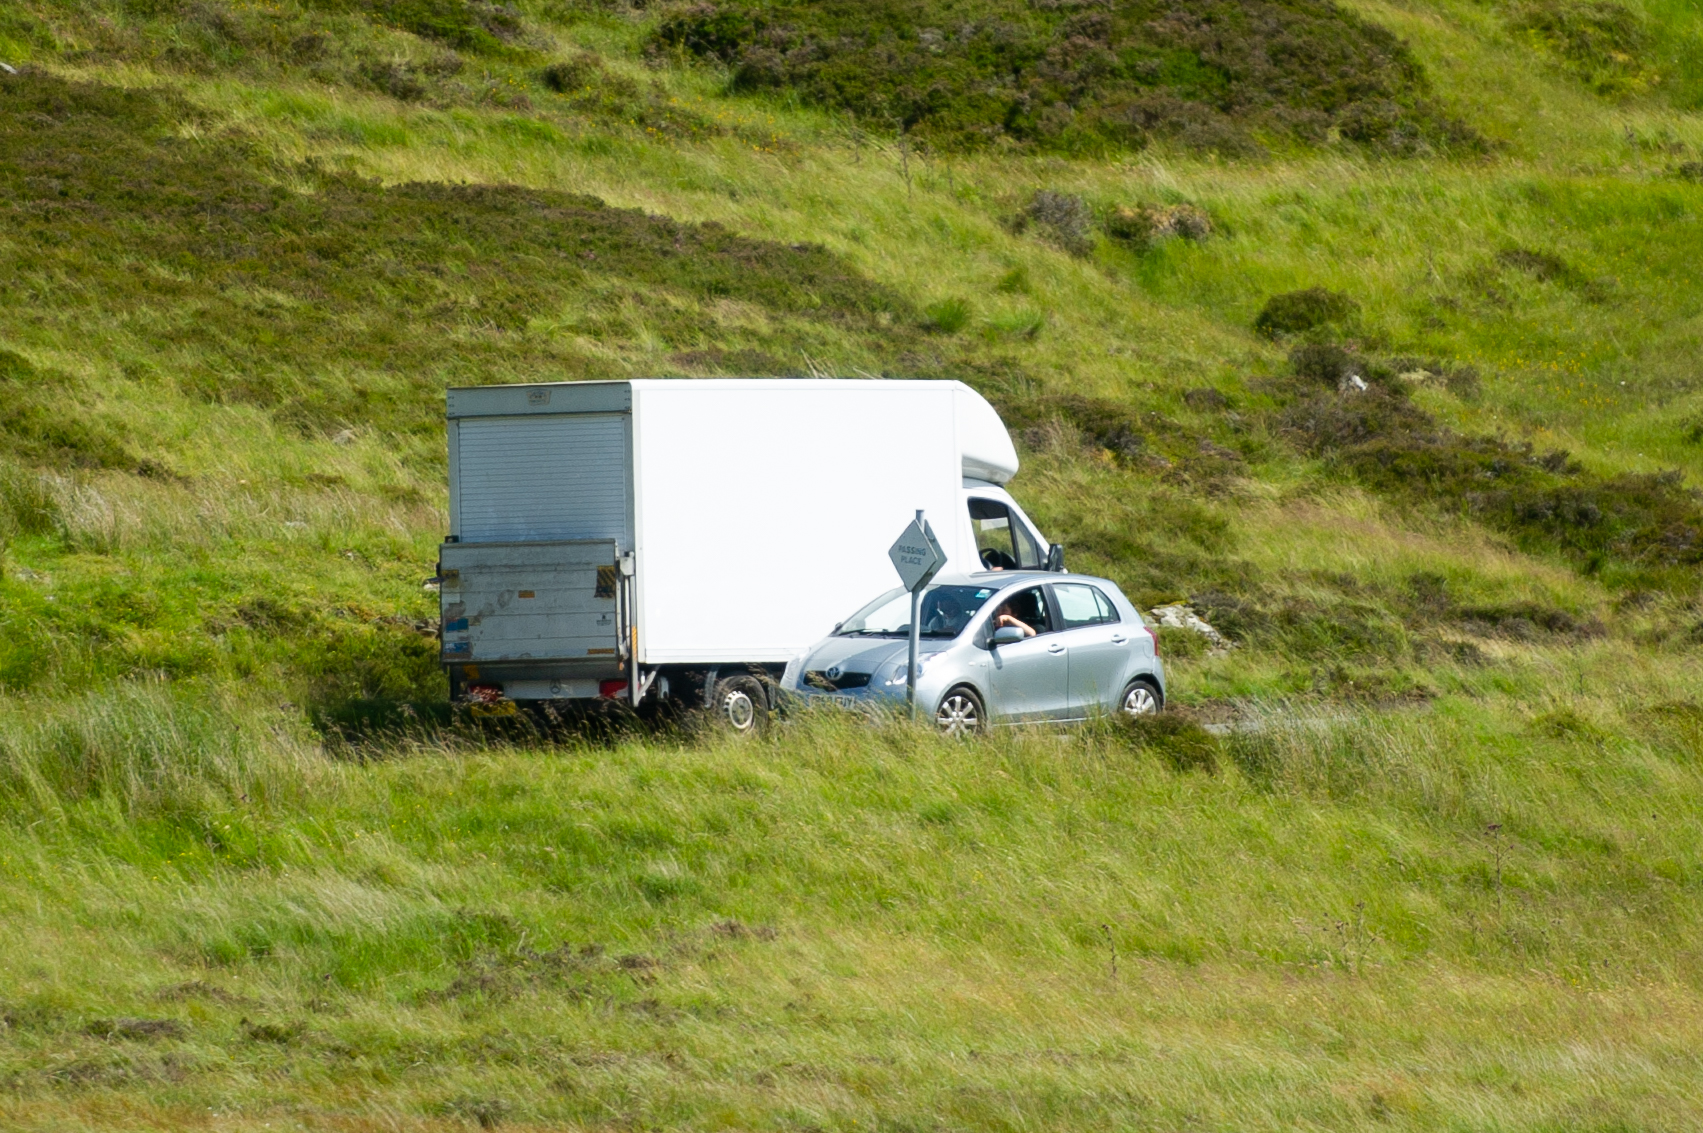 Perth and Kinross Council says it plans to formalise more passing places.